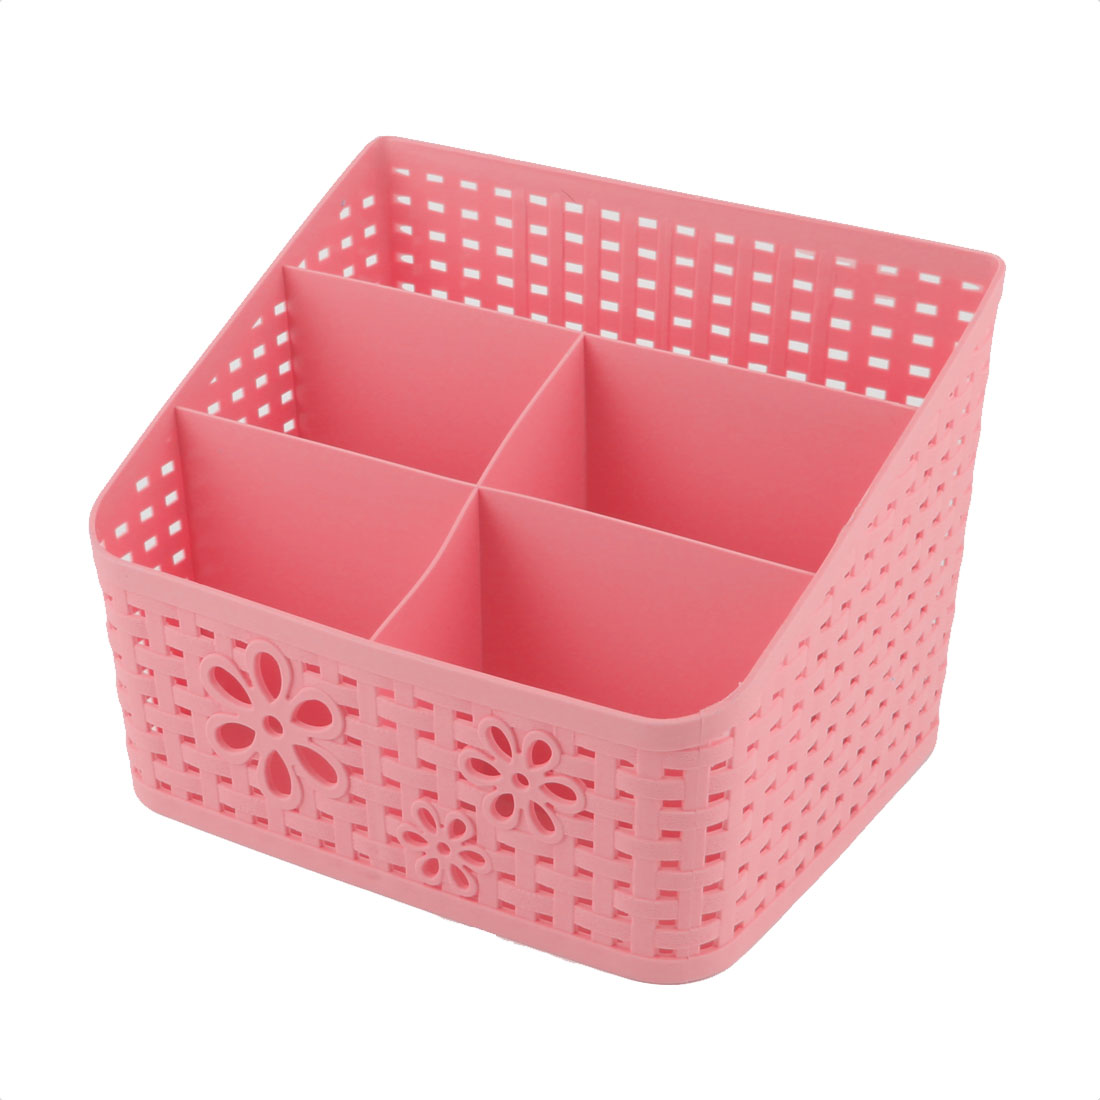 Office Table Desk Plastic 5 Slots Storage Box Organizer Container Pink